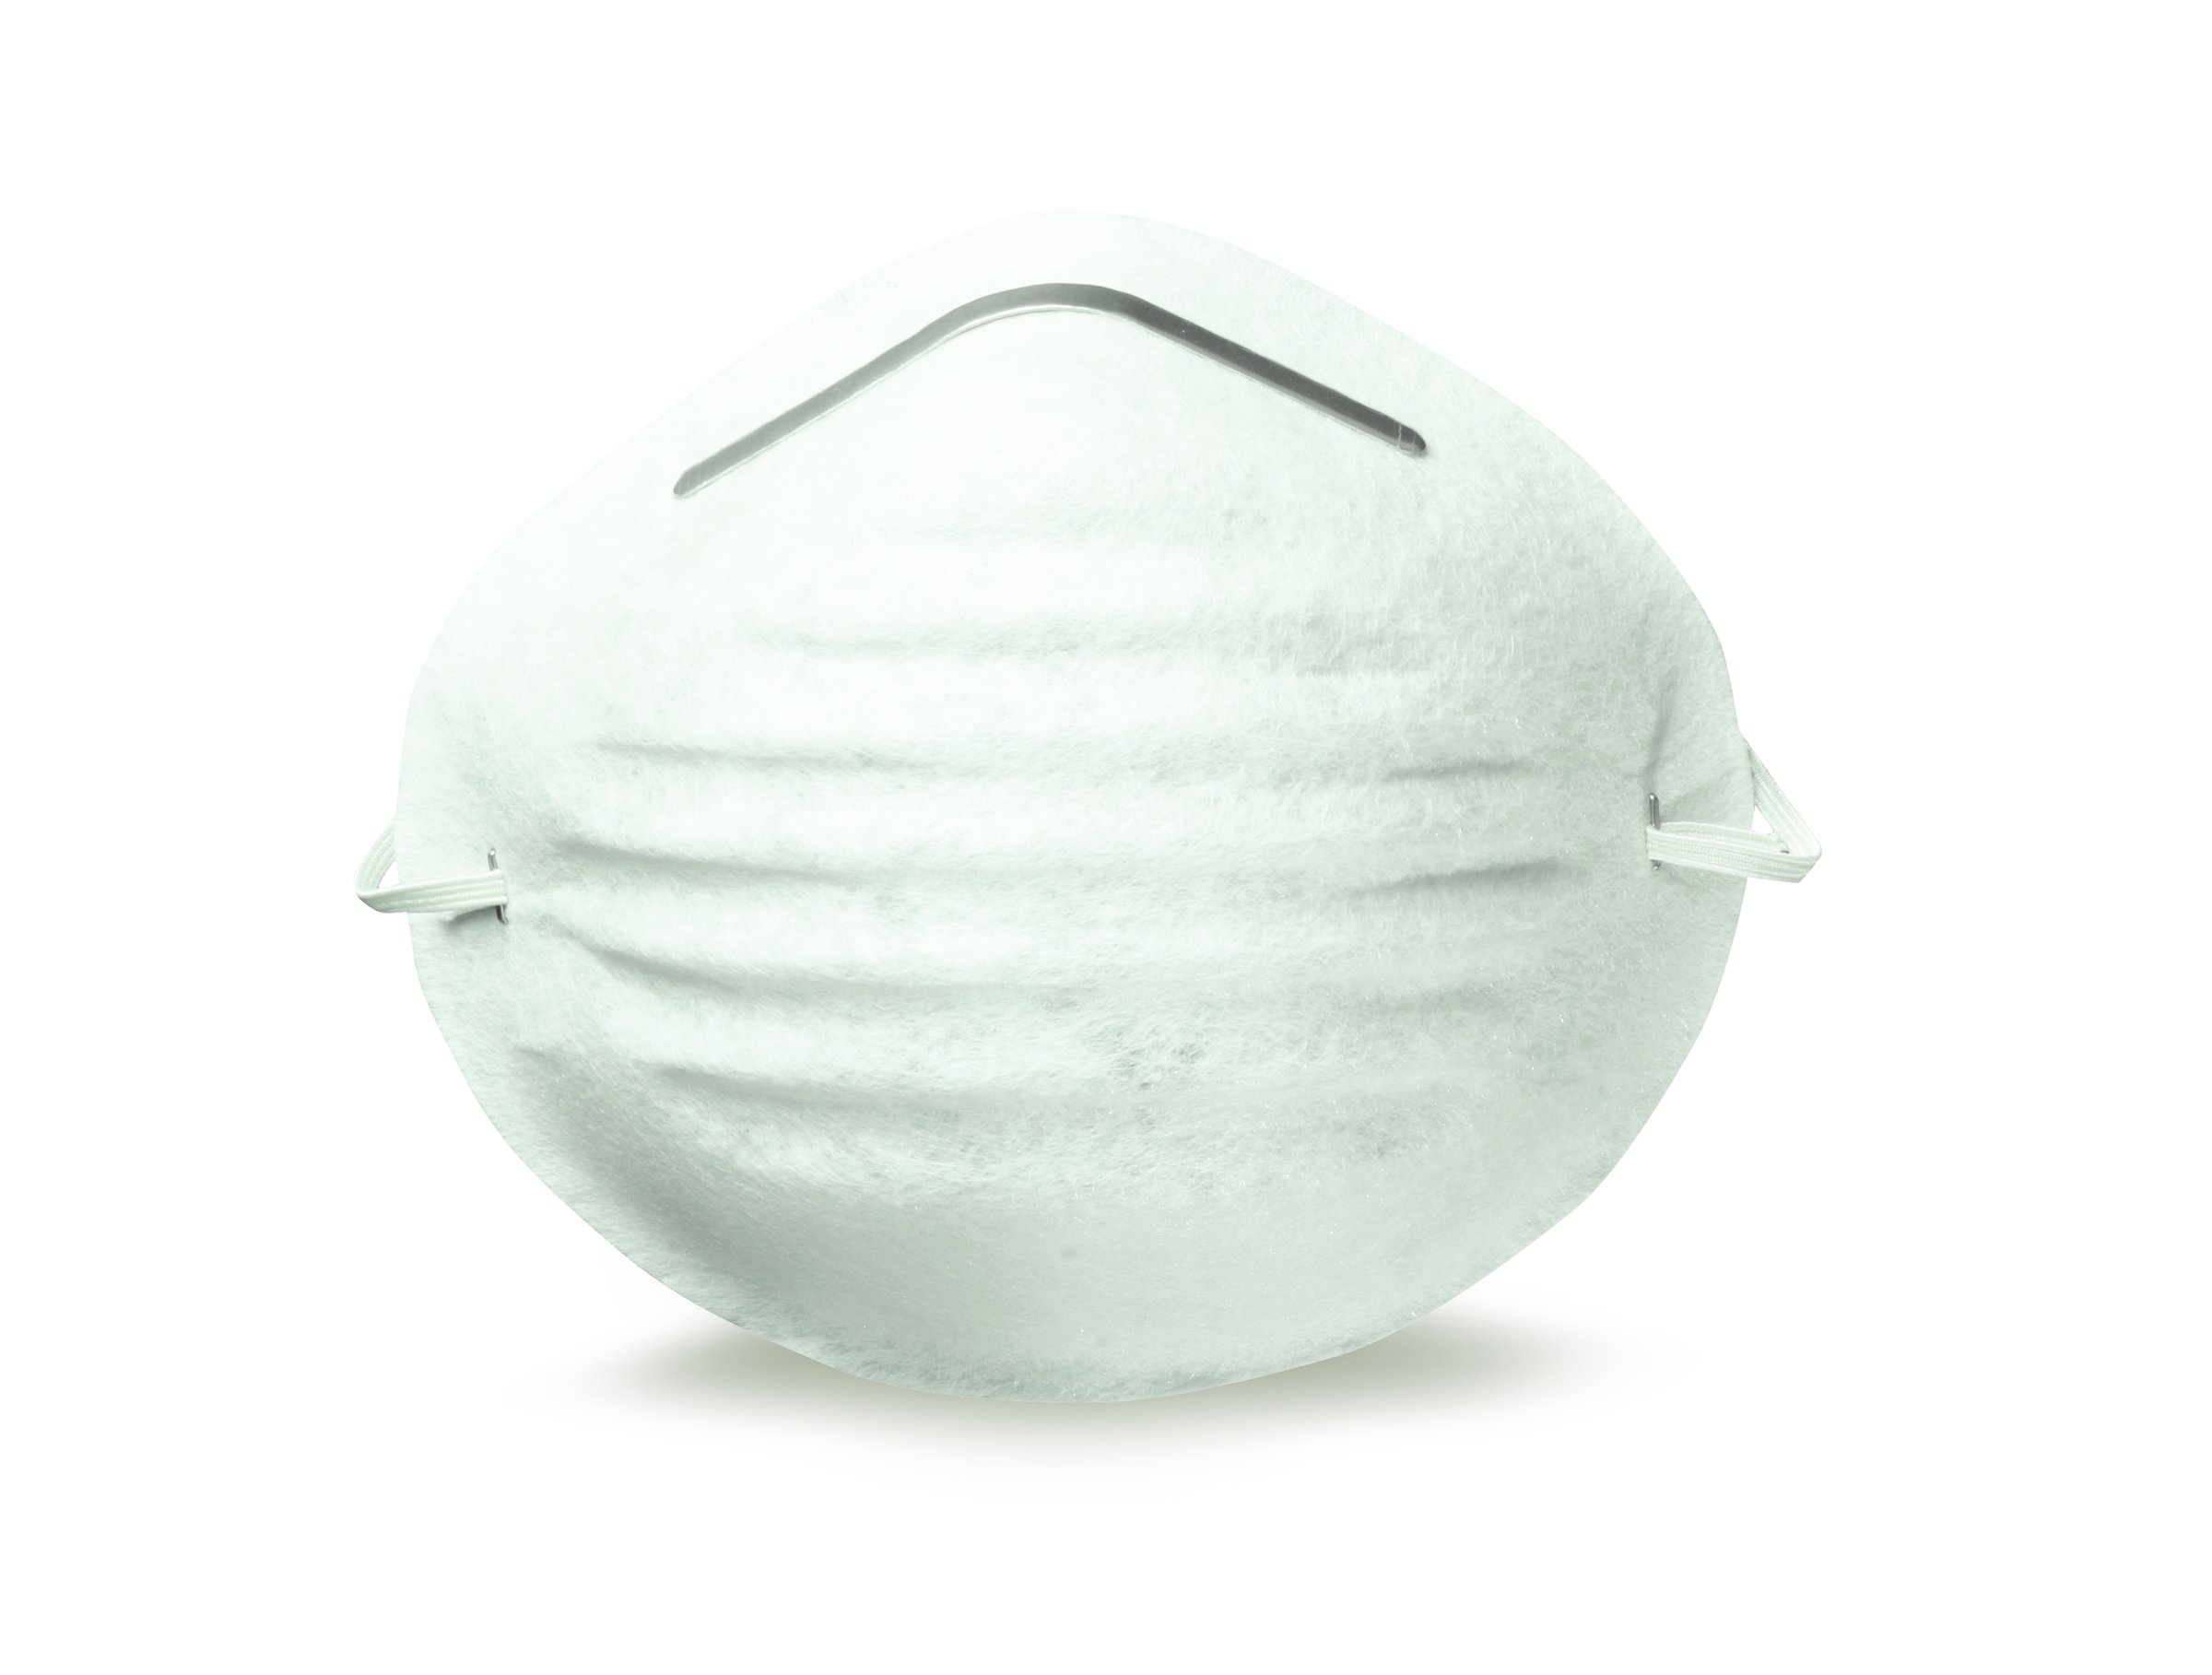 Honeywell Nuisance Disposable Dust Mask 1